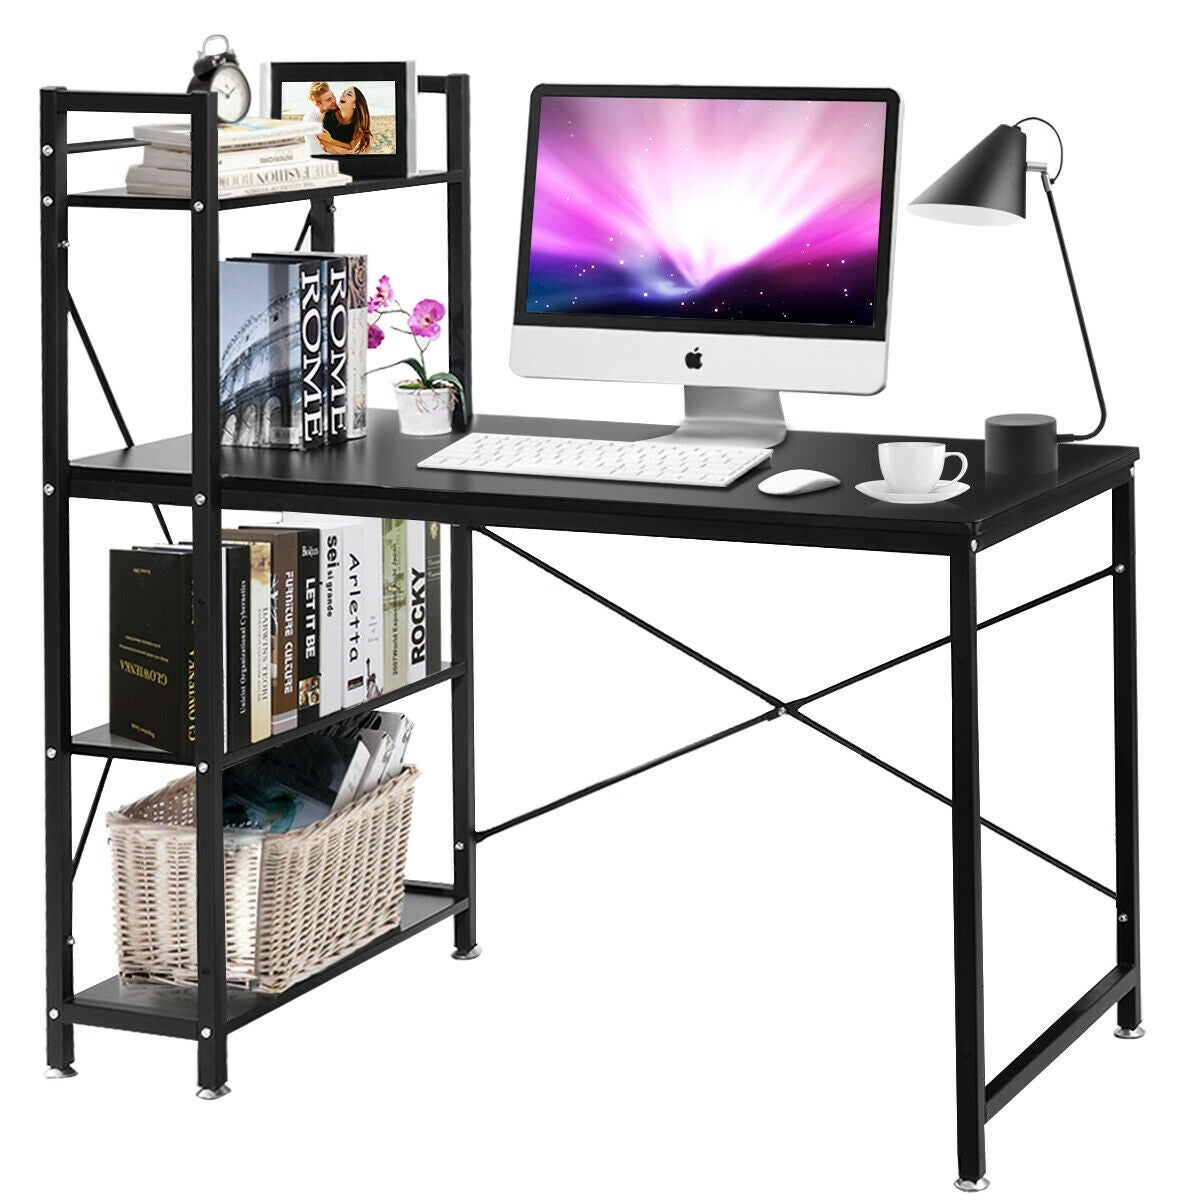 adb5842d75d3 Costway Modern Computer Desk With 4-Tier Shelves PC Workstation Study Table  Home Office